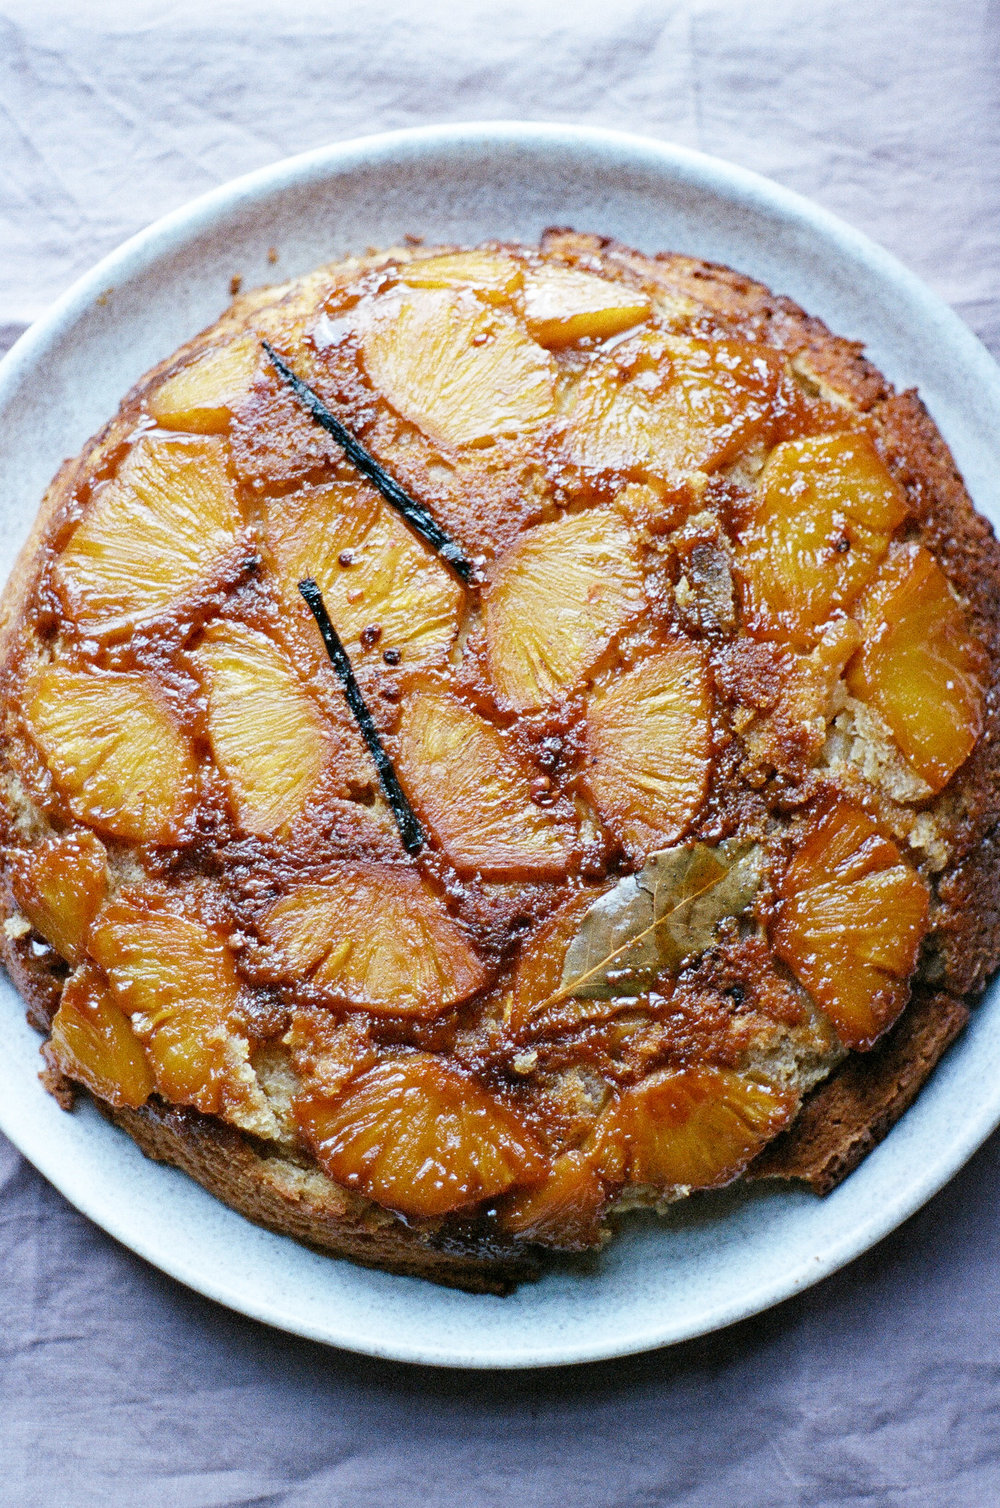 pineapple upside down cake-01910031.jpg